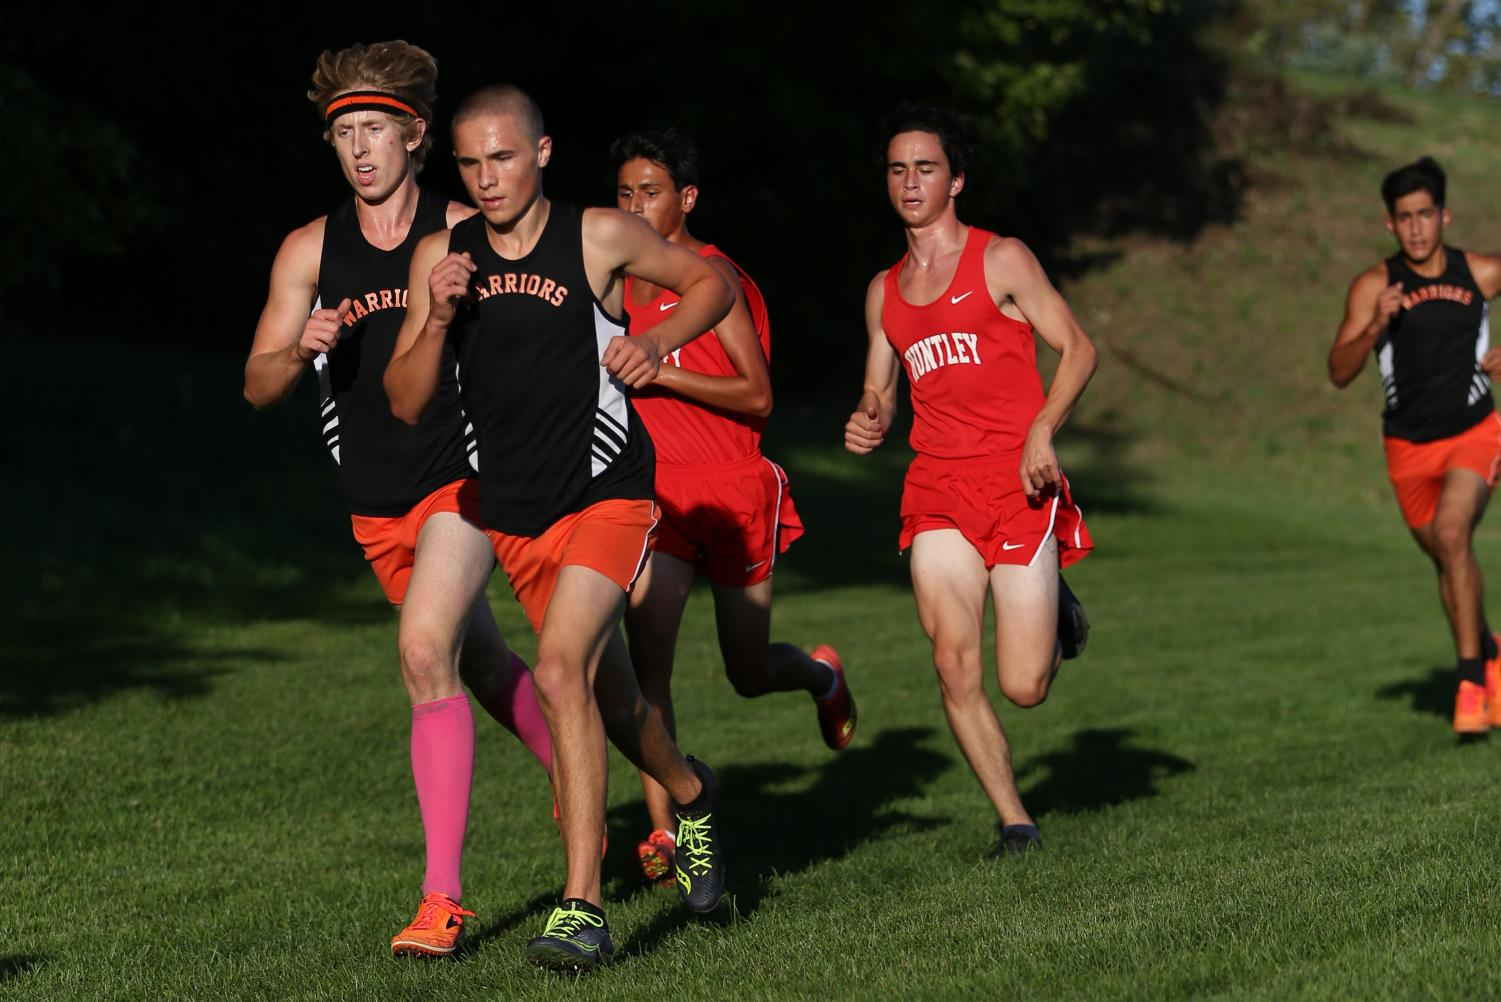 Junior Caleb Schopen and Seniors Ian Knebl push ahead of their Huntley opponents during a cross-country meet on September 24 at McHenry Township Park.